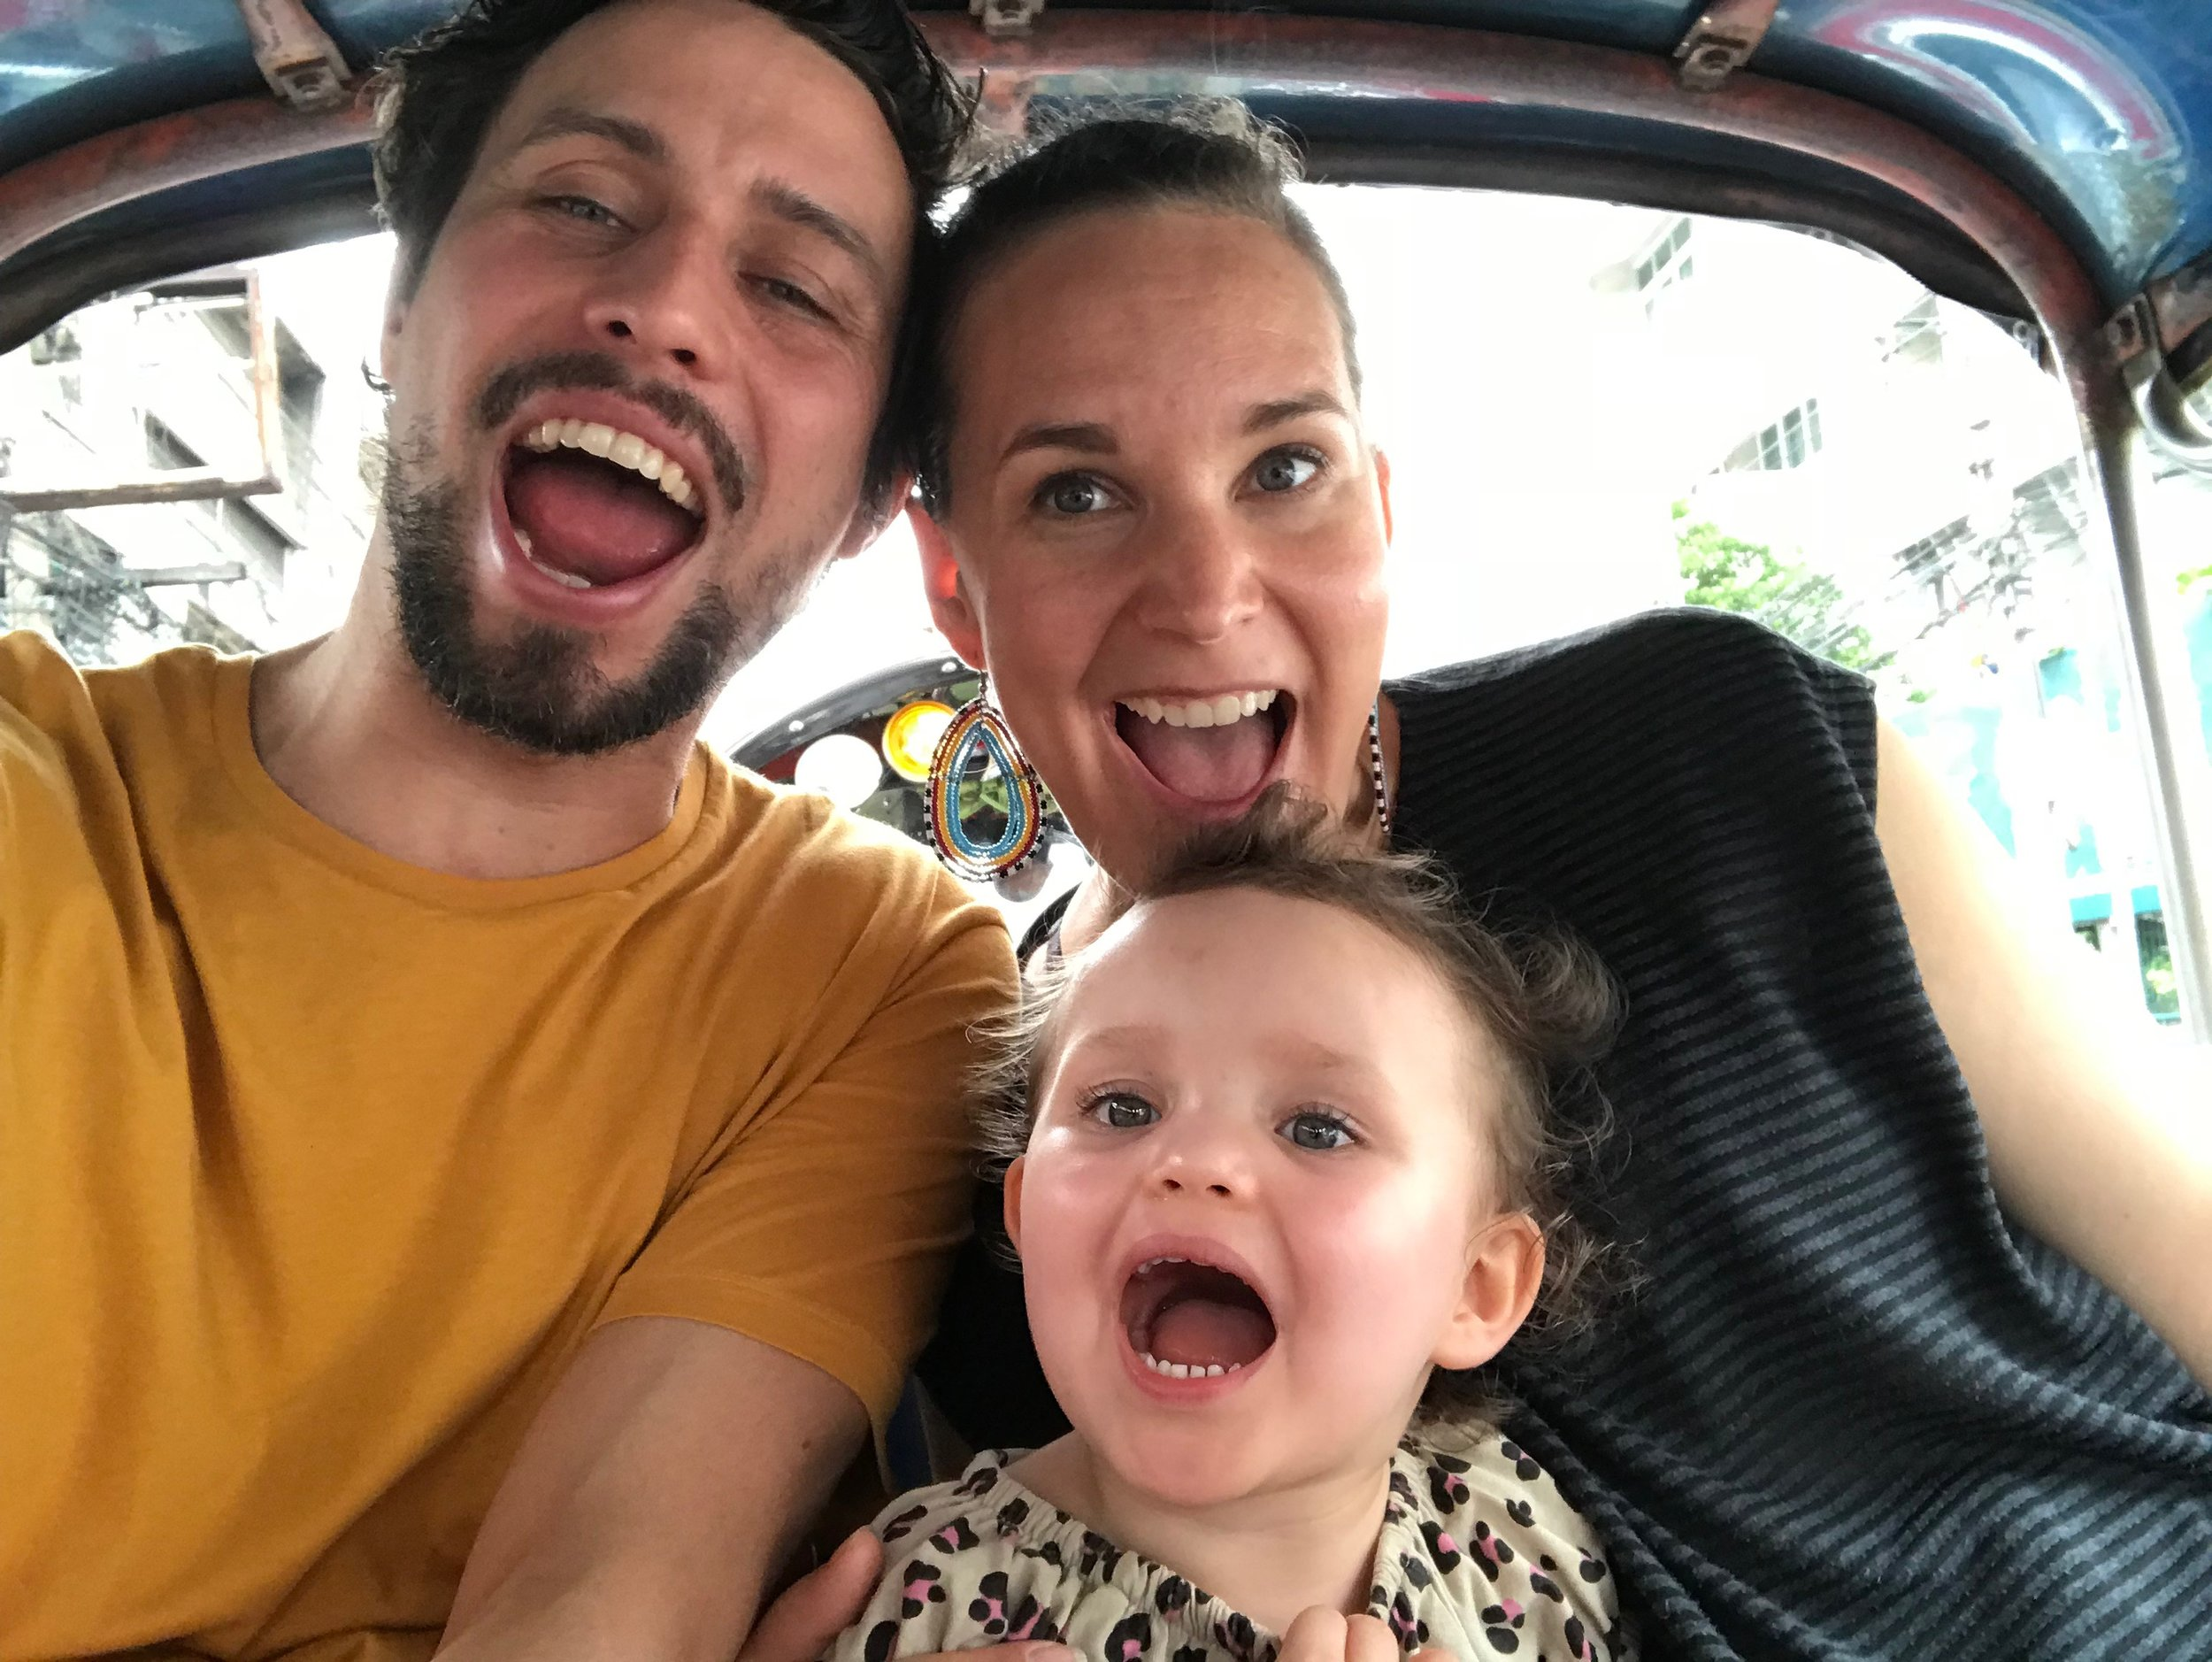 Tuktuk_with_children.jpg